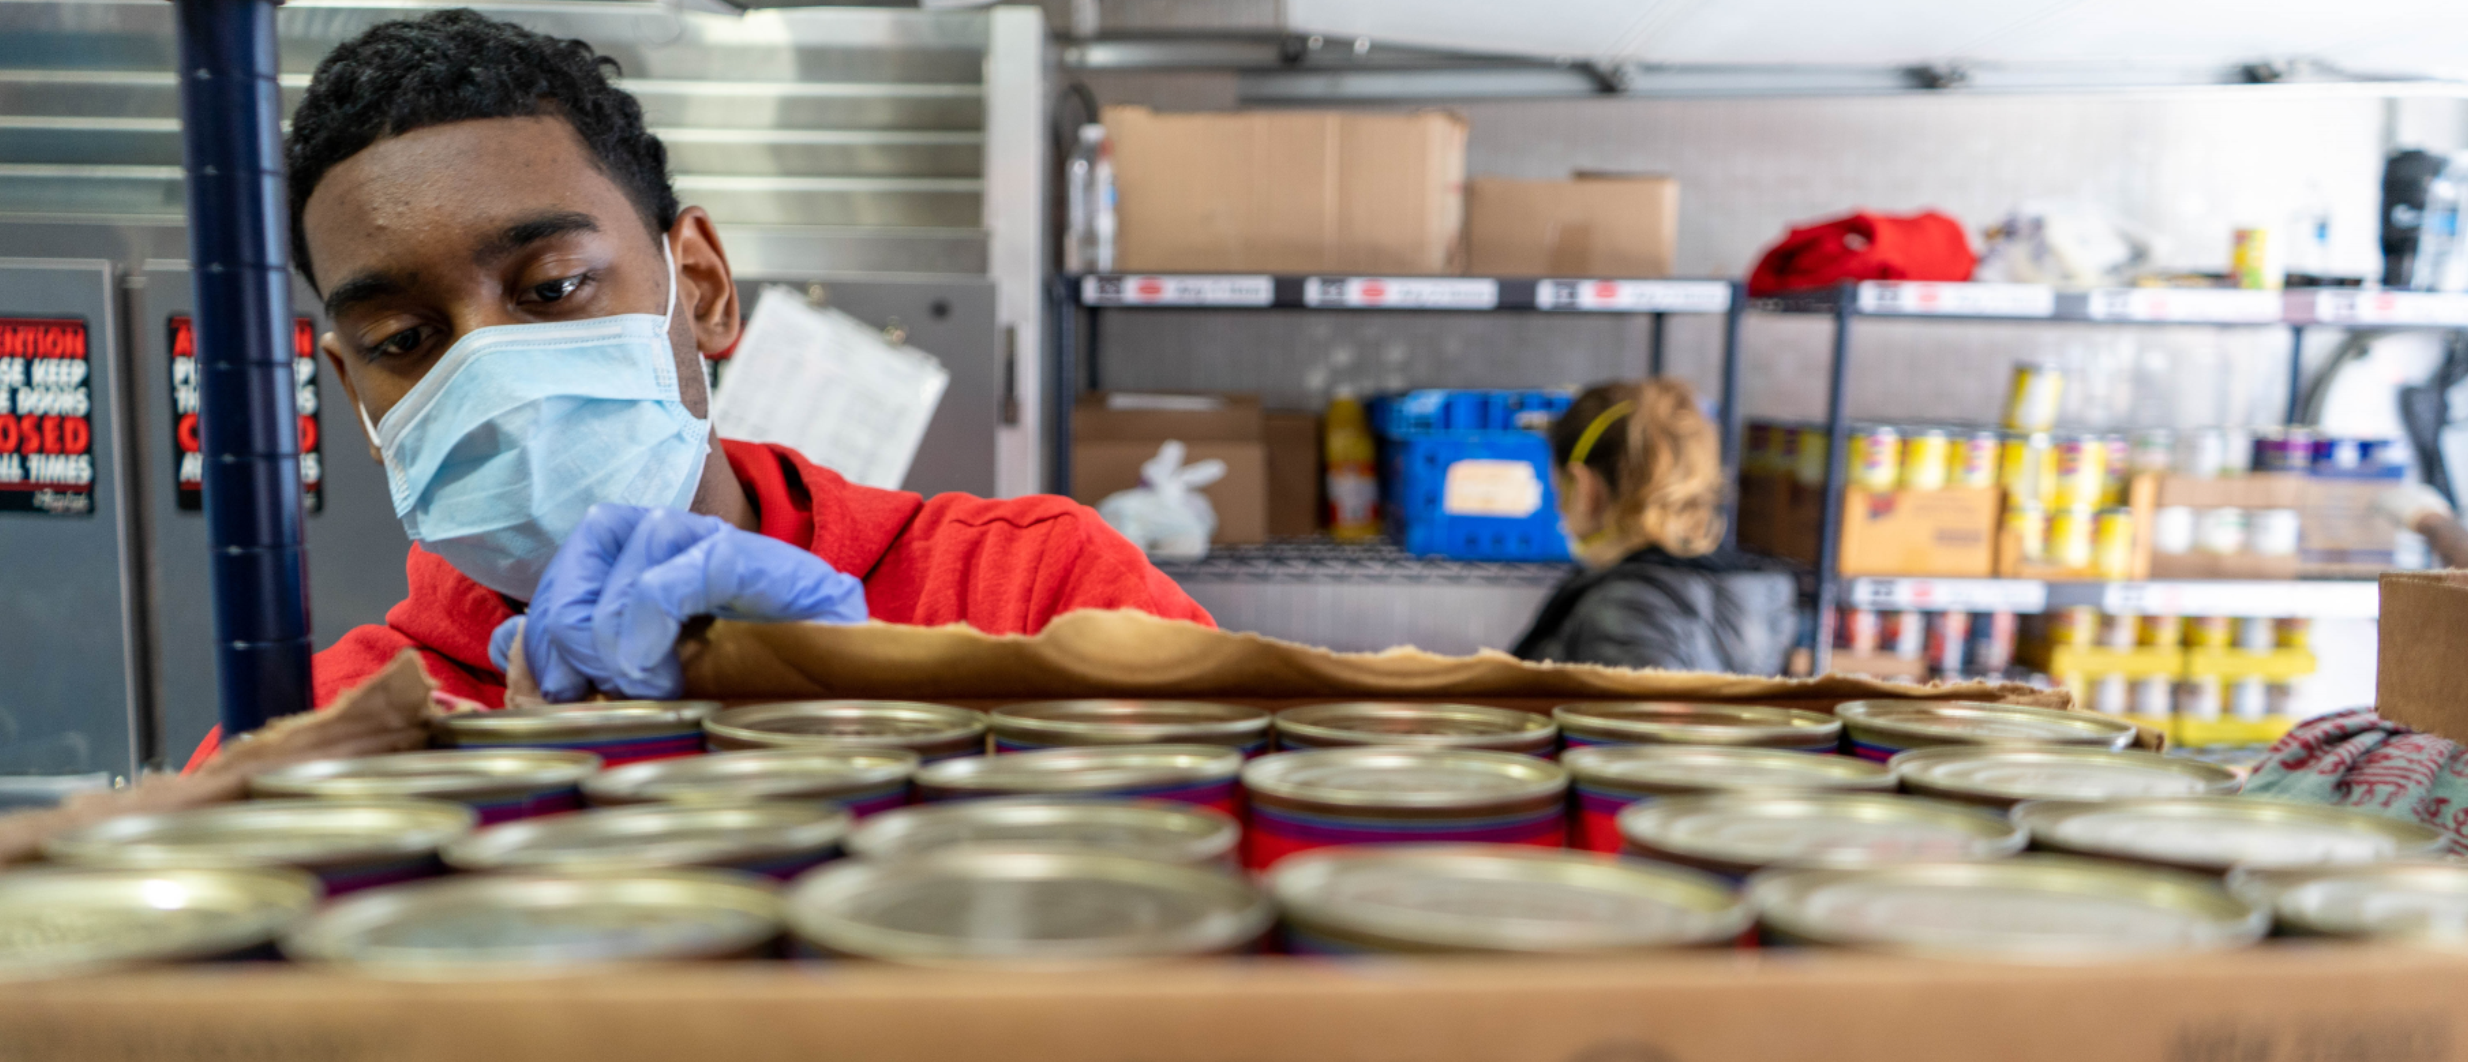 Male volunteer, in a red shirt, stocking cans of salmon at food pantry.